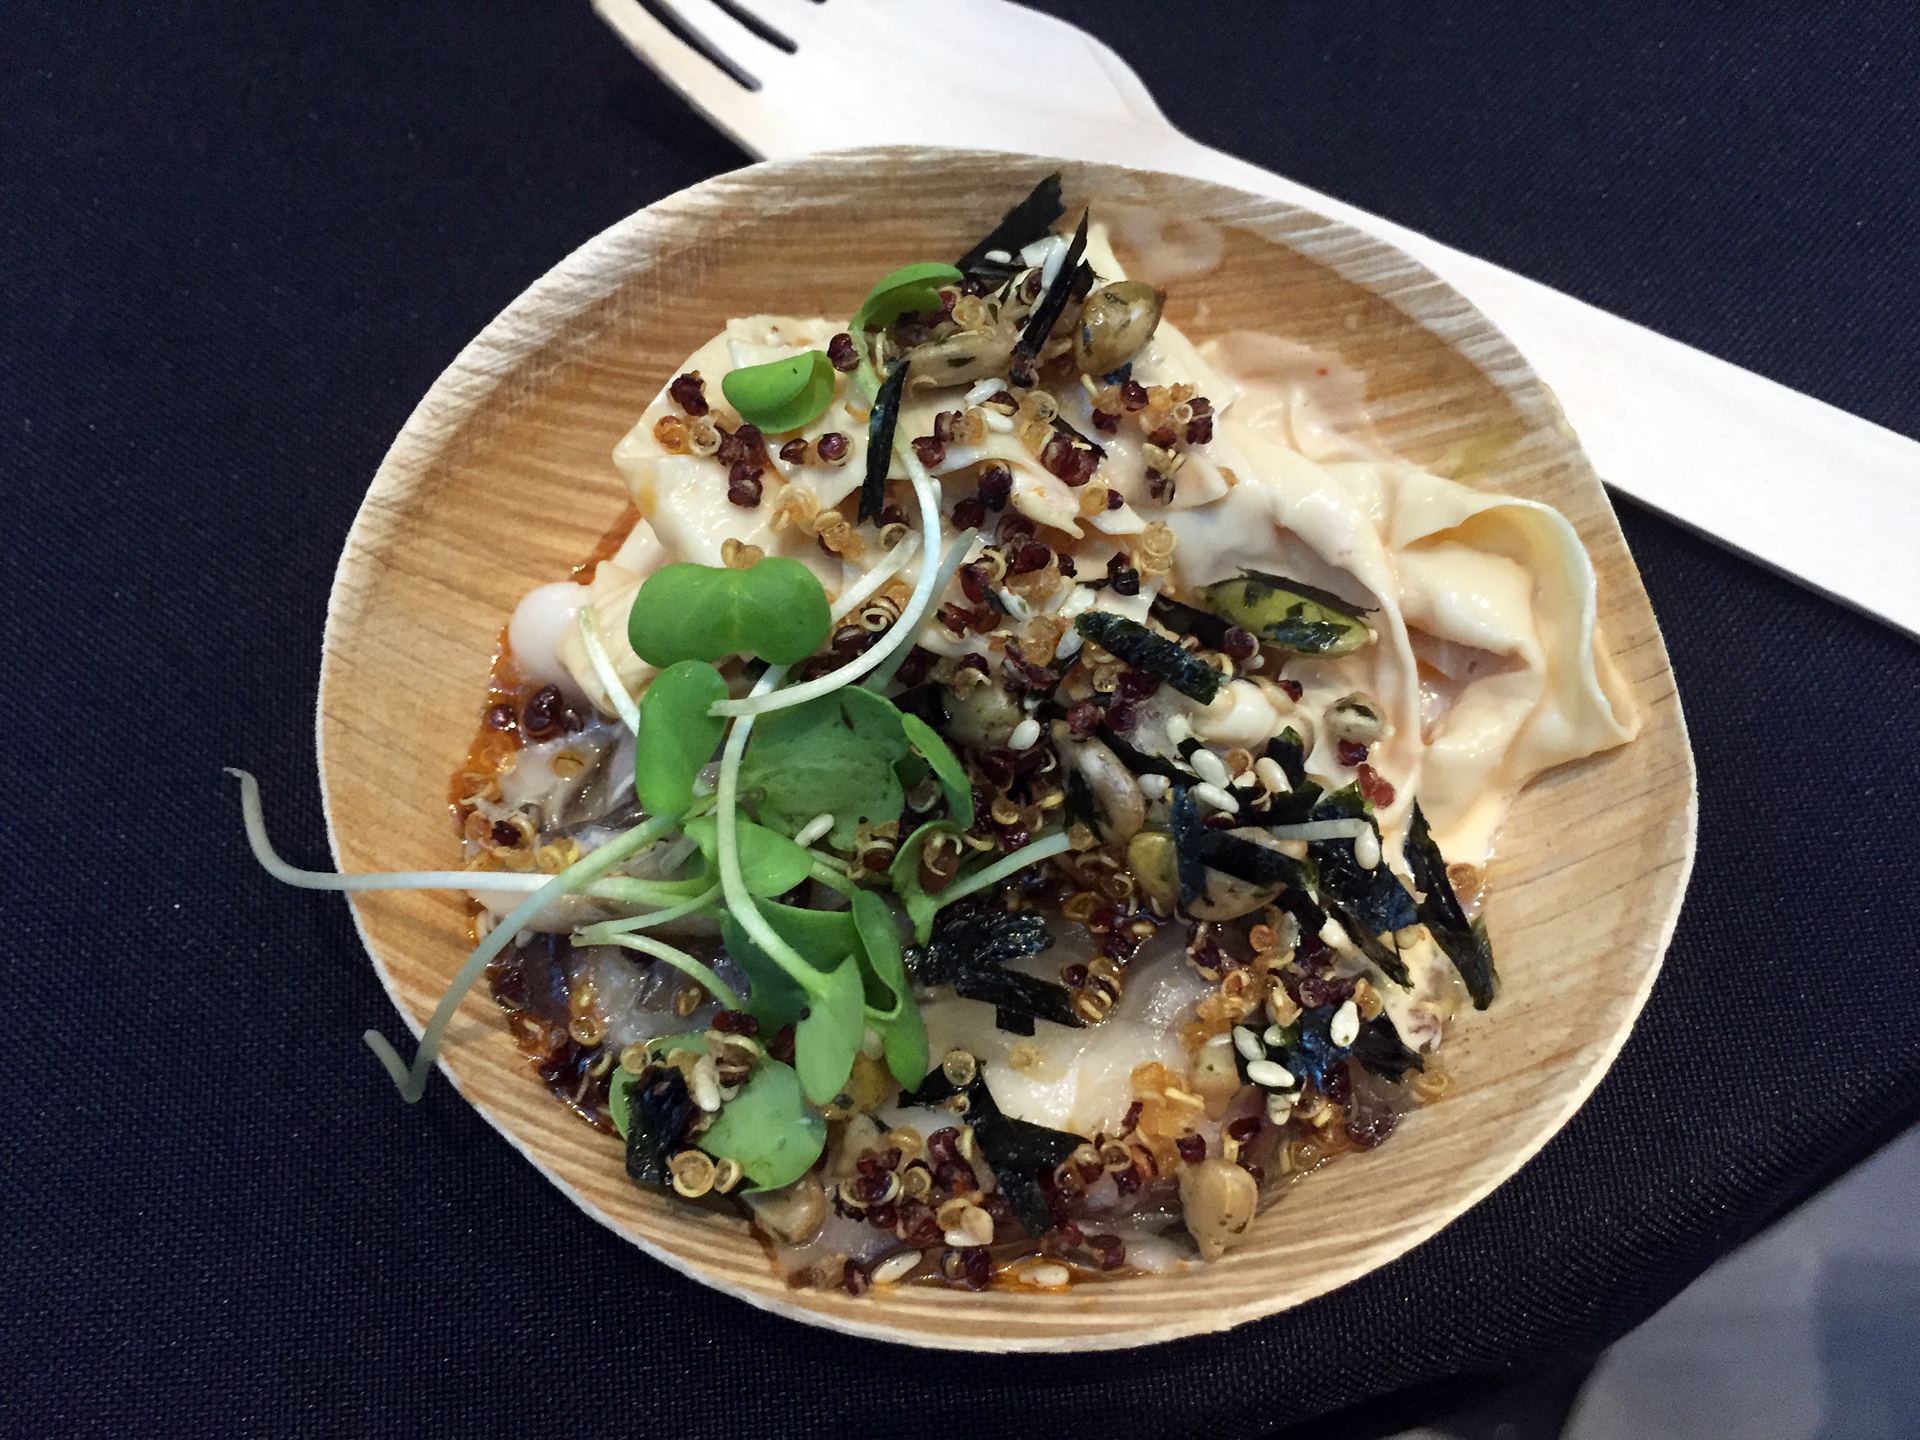 Stuart Brioza's cold yuba noodles pairs the slippery tofu skin with crunchy toasted quinoa for a multi-sensory bite.